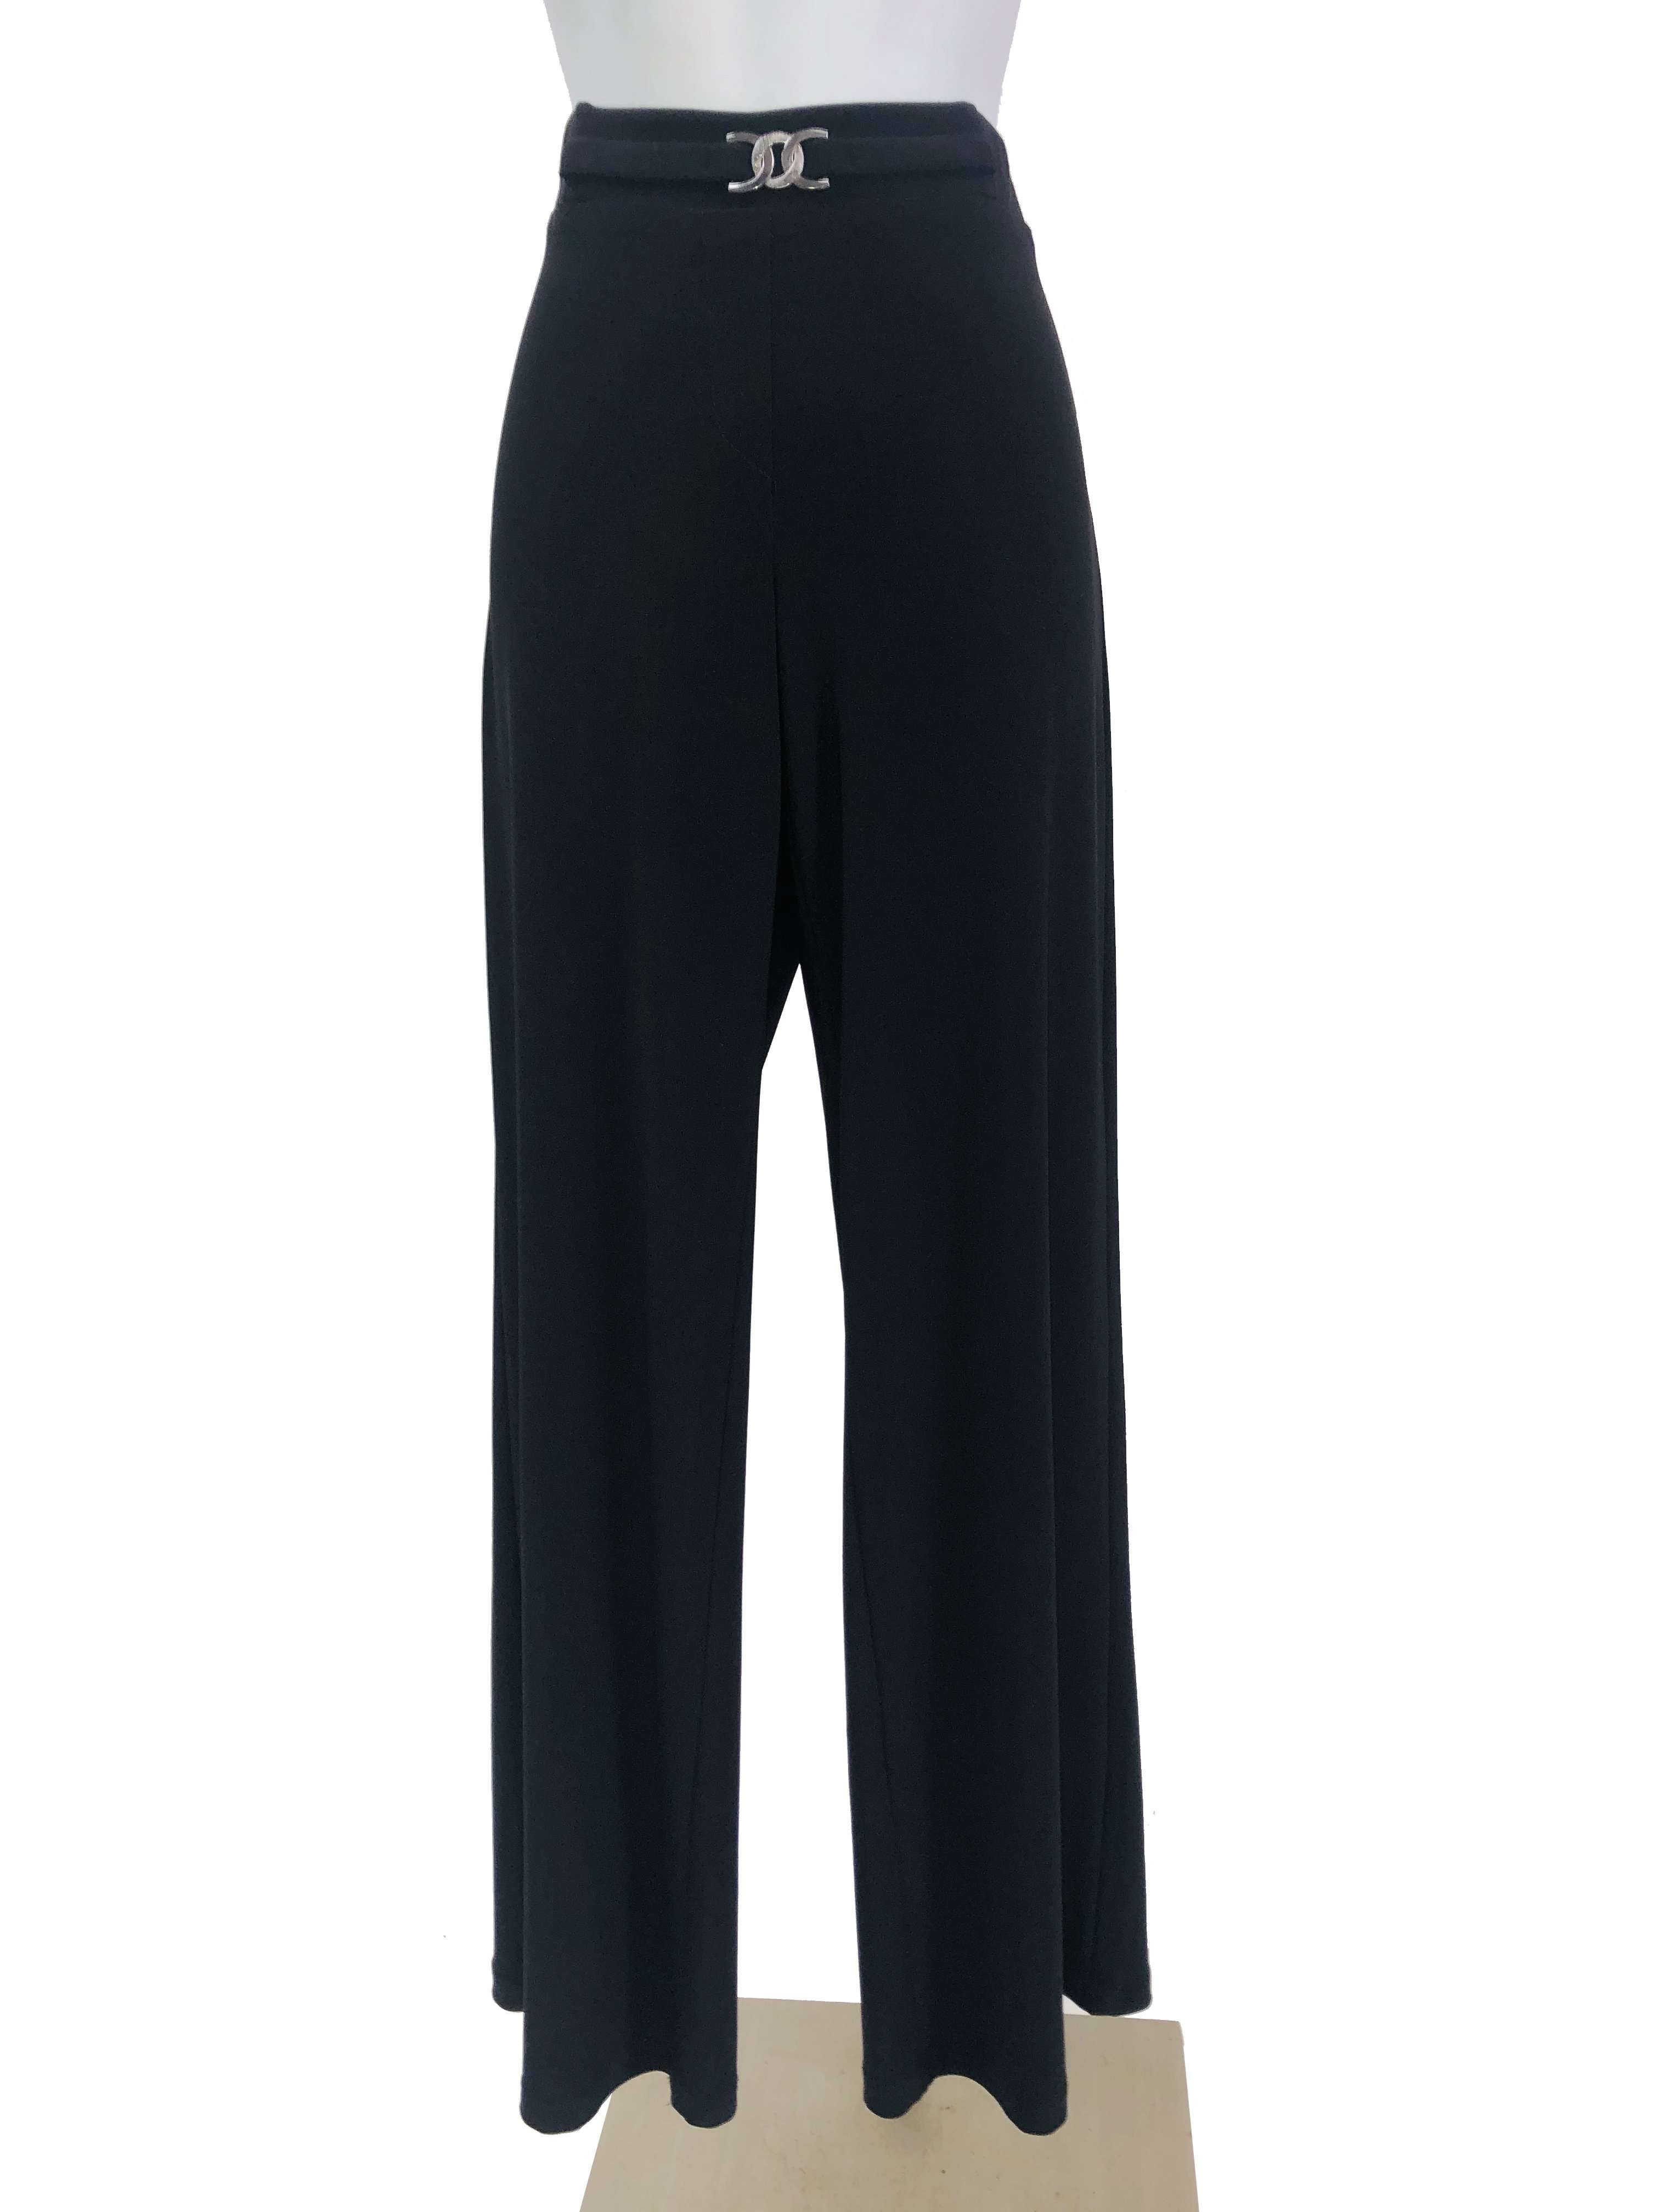 Women's Black Stretch Pants - Yvonne Marie - Yvonne Marie